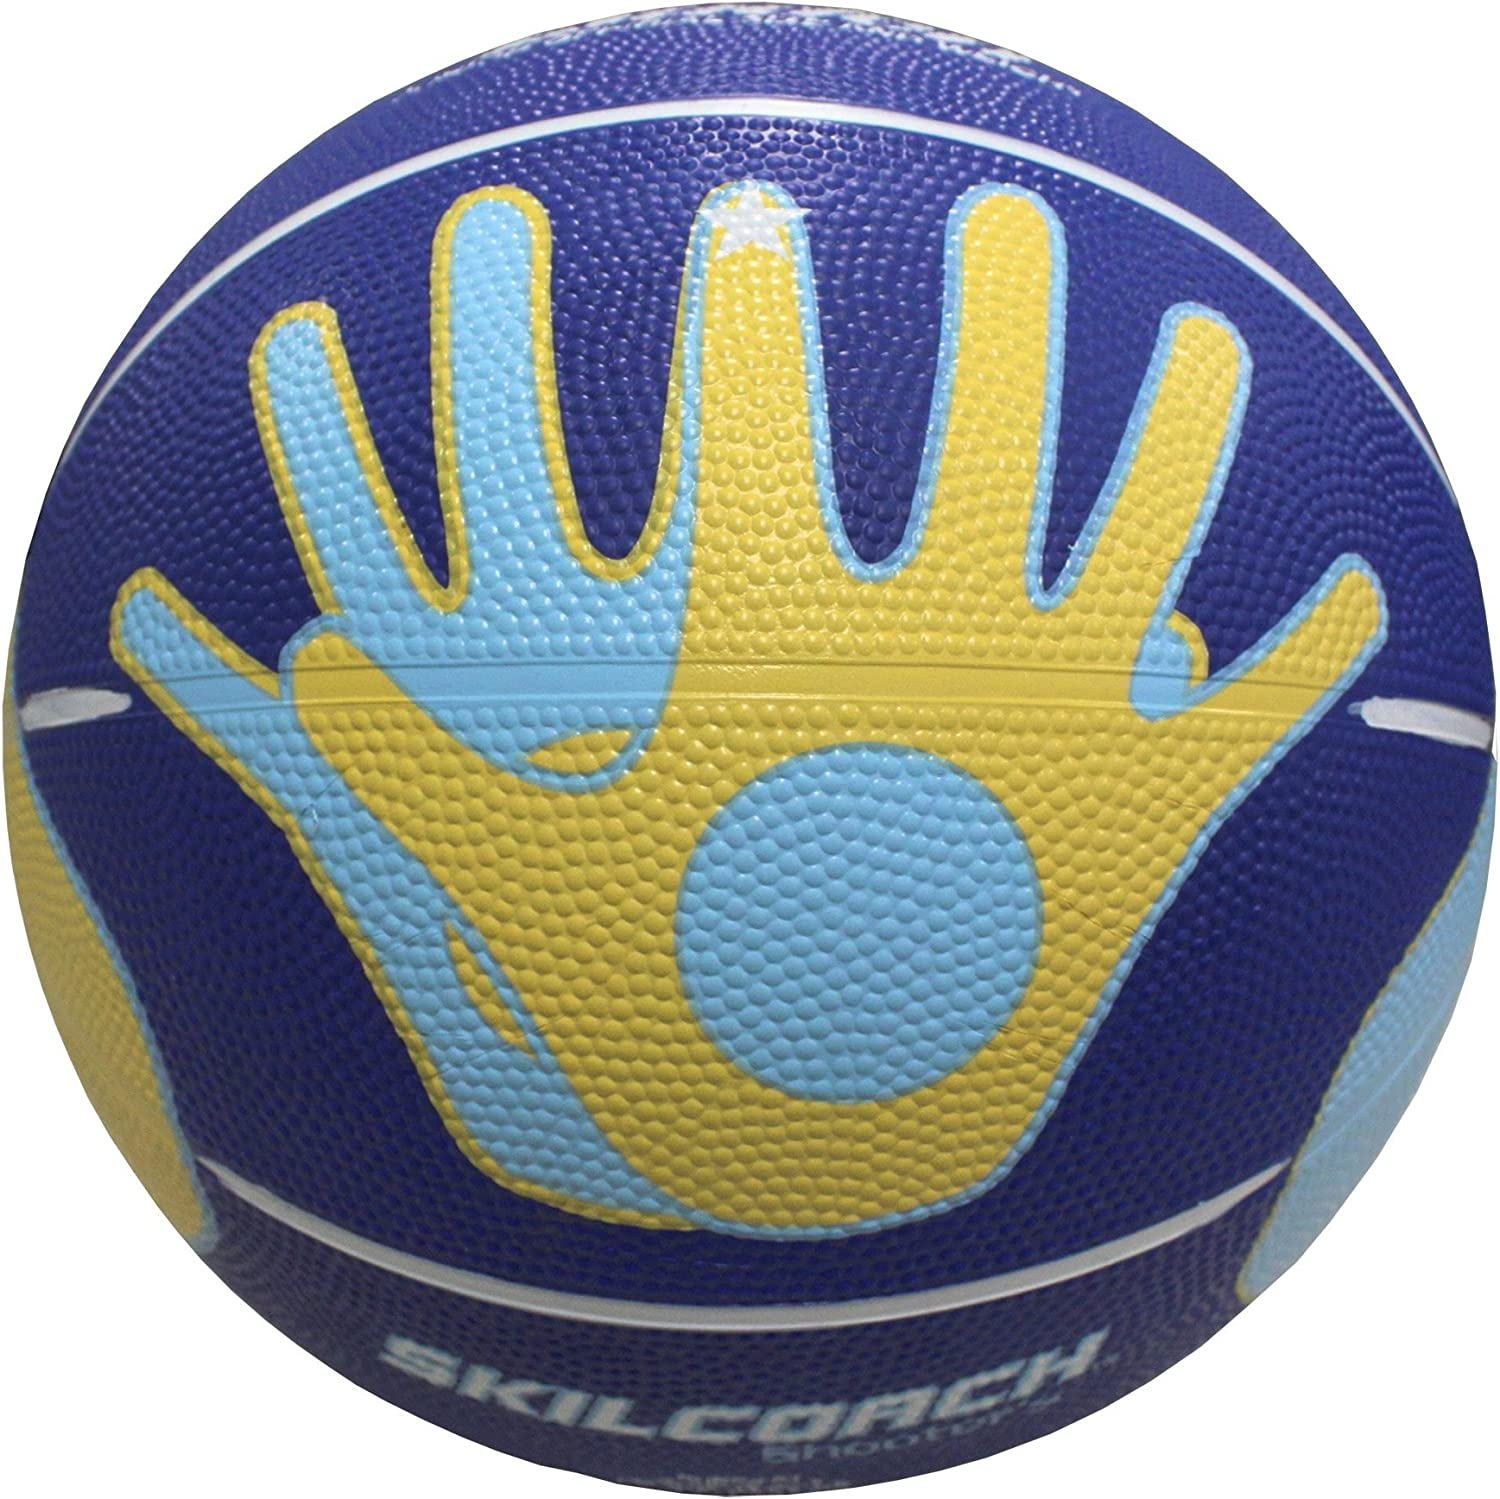 Baden Coaching Players Training Ball Skills Teaching Concepts Basketball Size 6